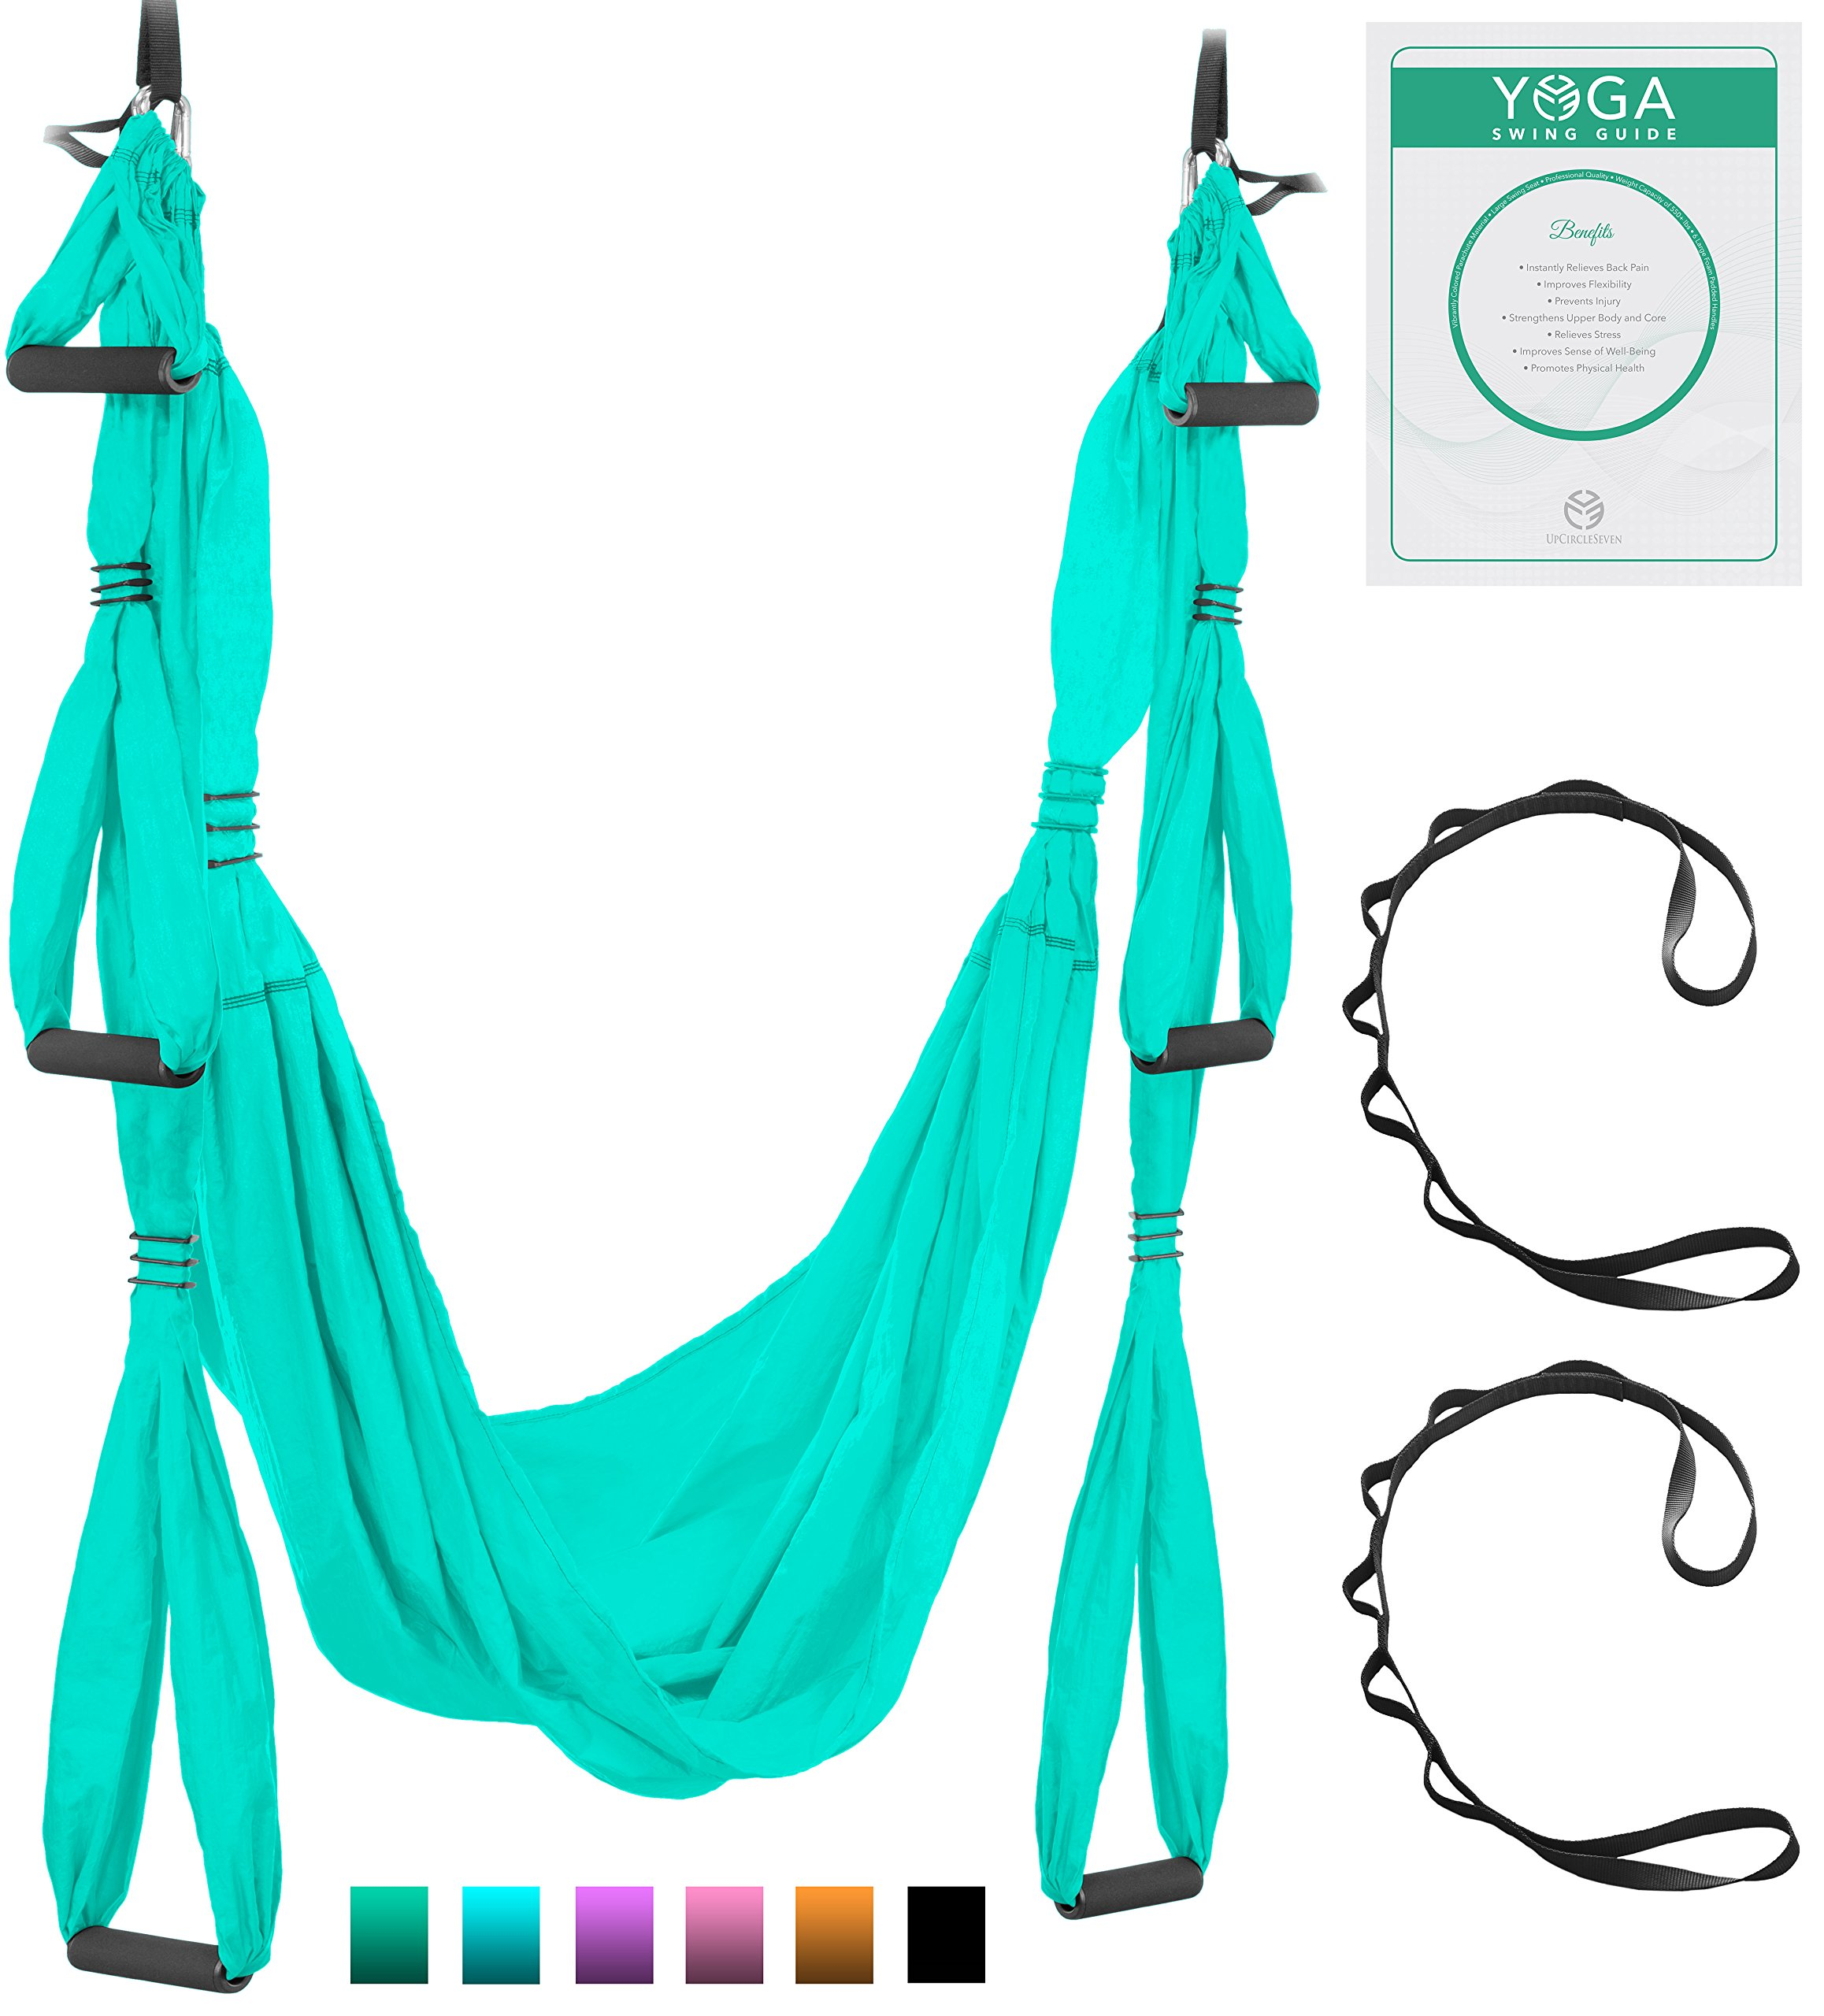 Aerial Yoga Swing - Ultra Strong Antigravity Yoga Hammock/Trapeze/Sling for Air Yoga Inversion Exercises - 2 Extensions Straps Included (Turquoise) by UpCircleSeven (Image #1)